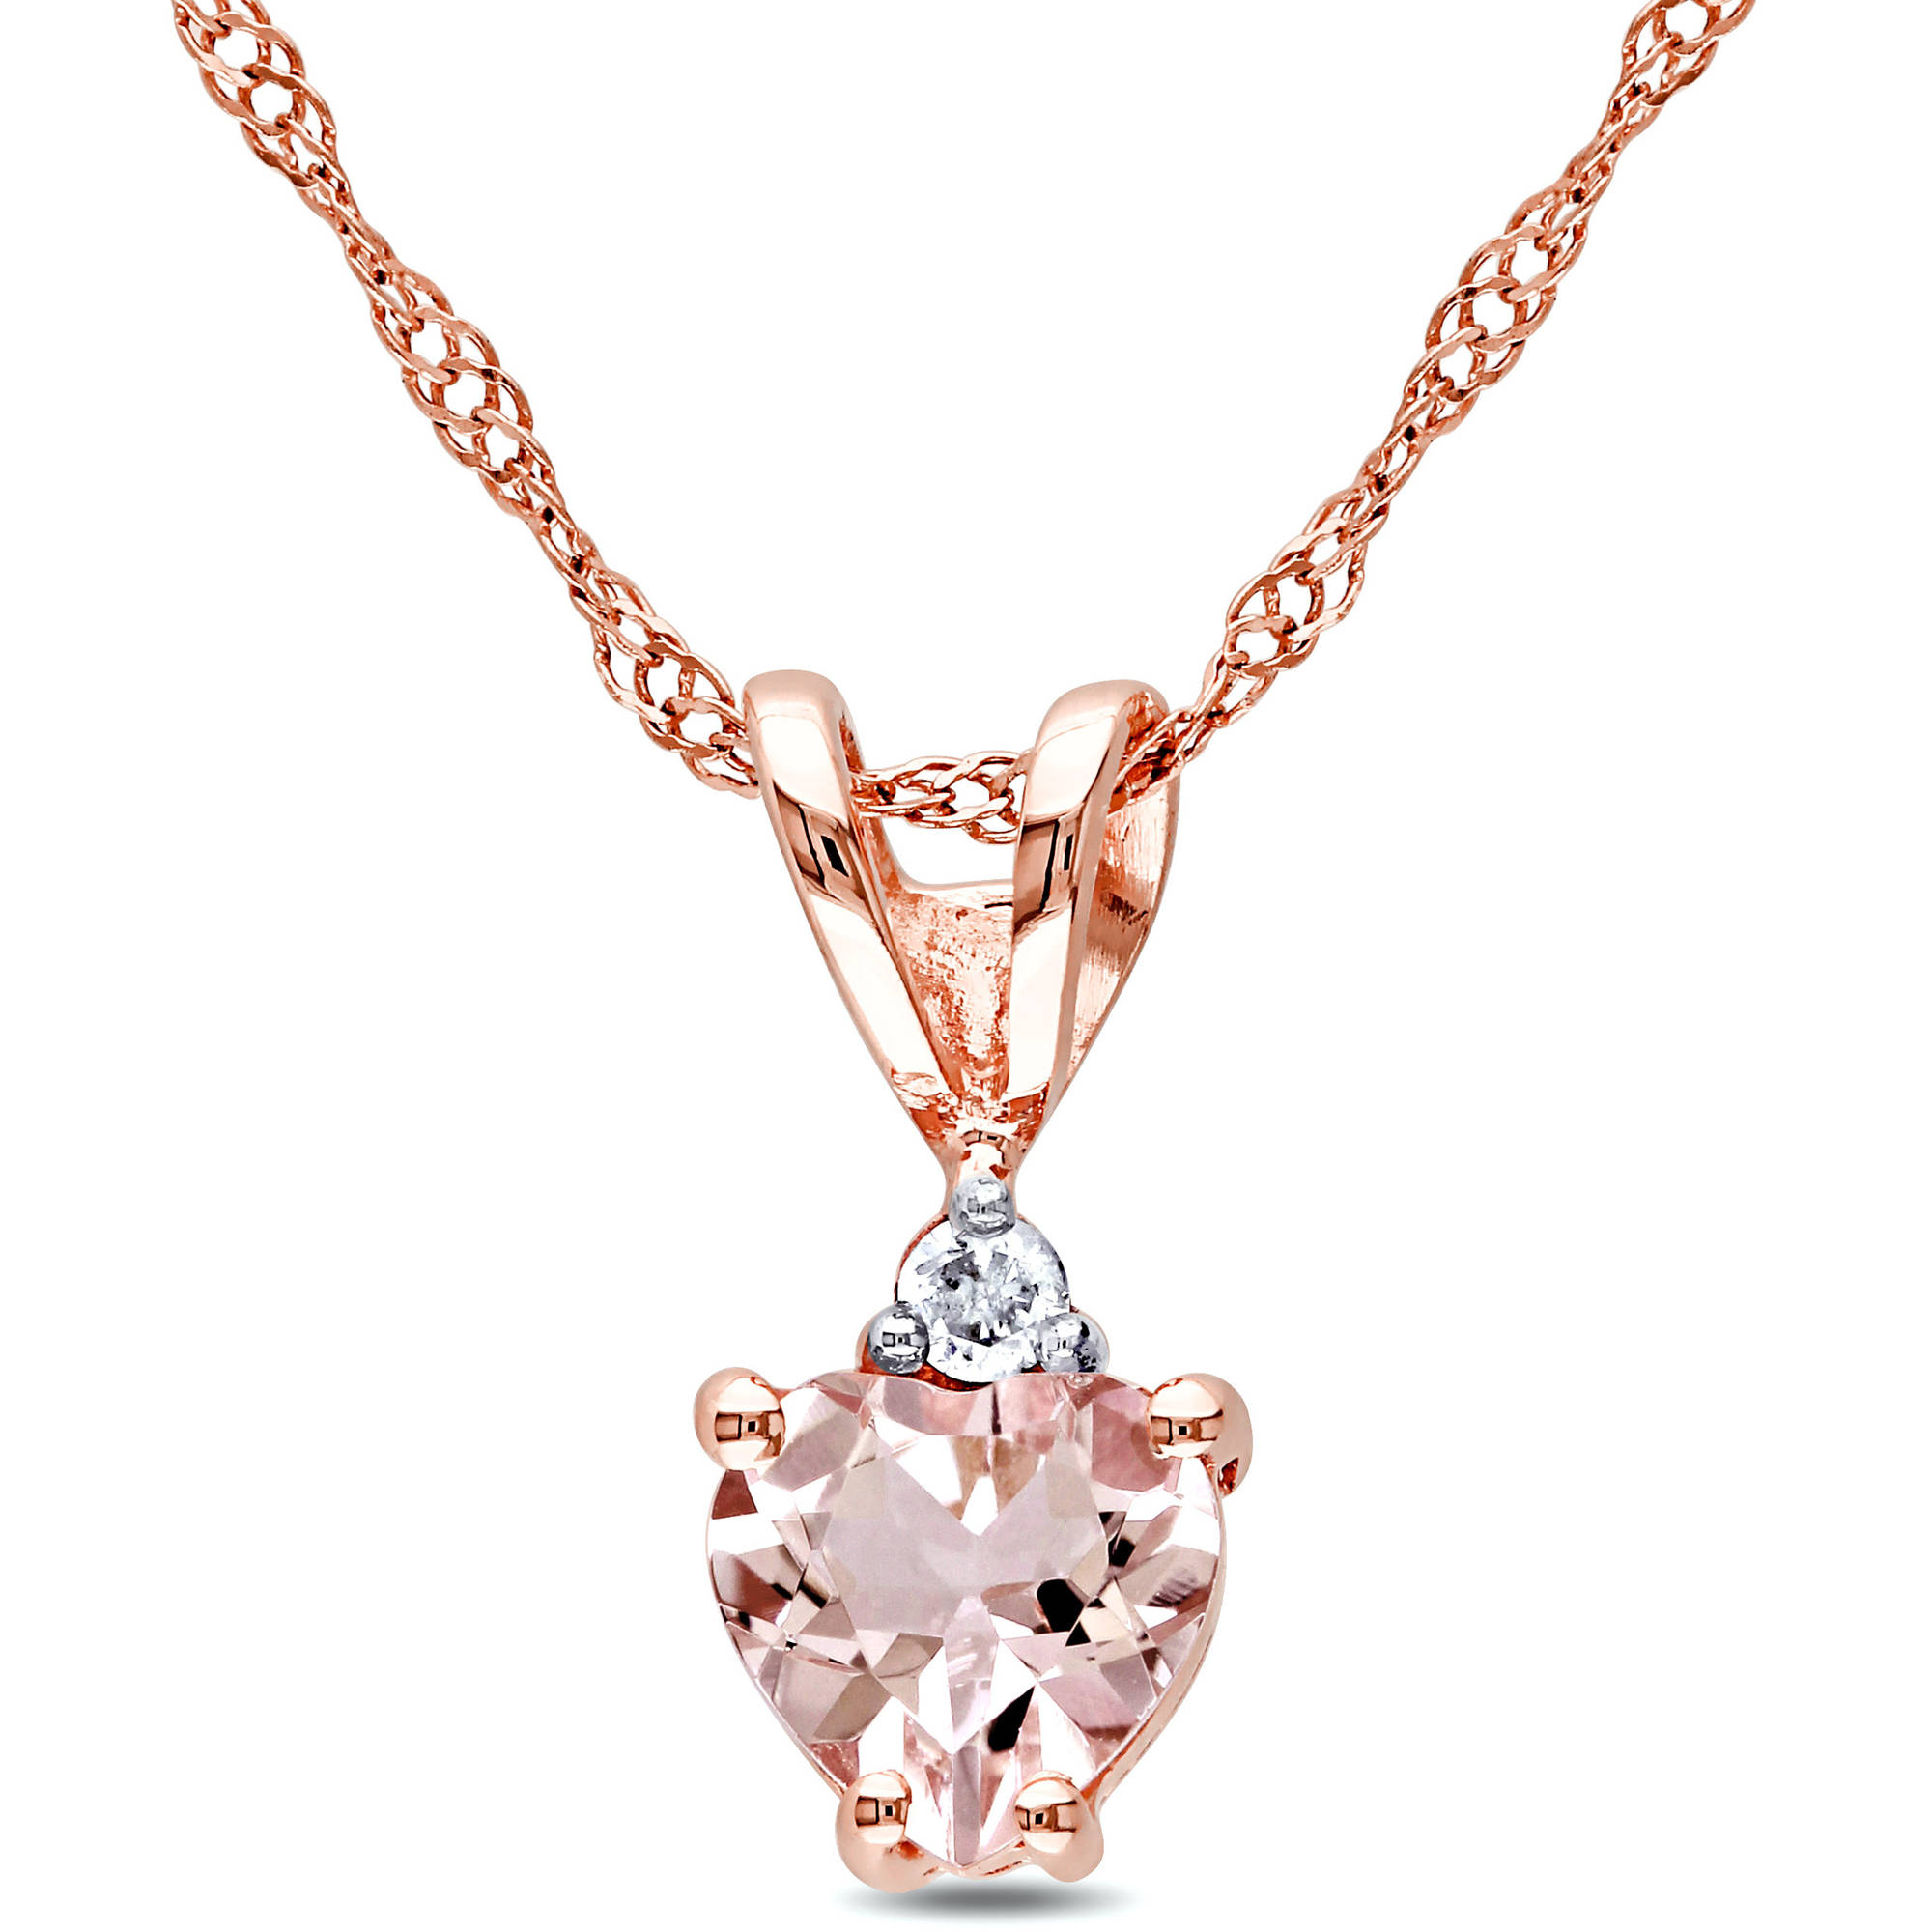 Tangelo 1/2 Carat T.G.W. Morganite and Diamond-Accent 10kt Rose Gold Heart Pendant, 17""